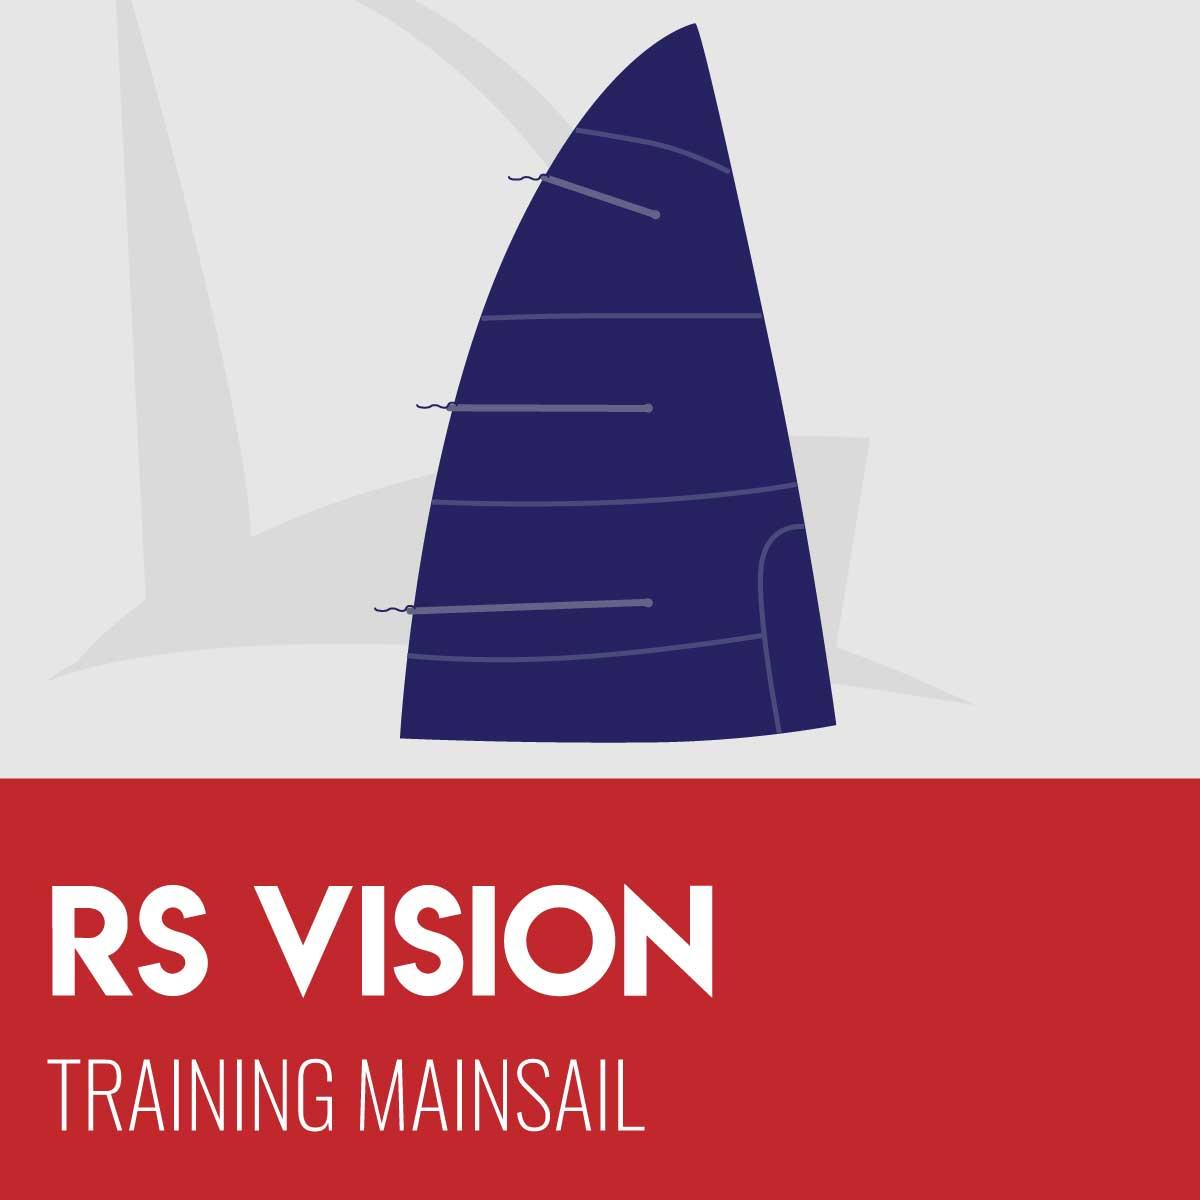 RS Vision Training Mainsail